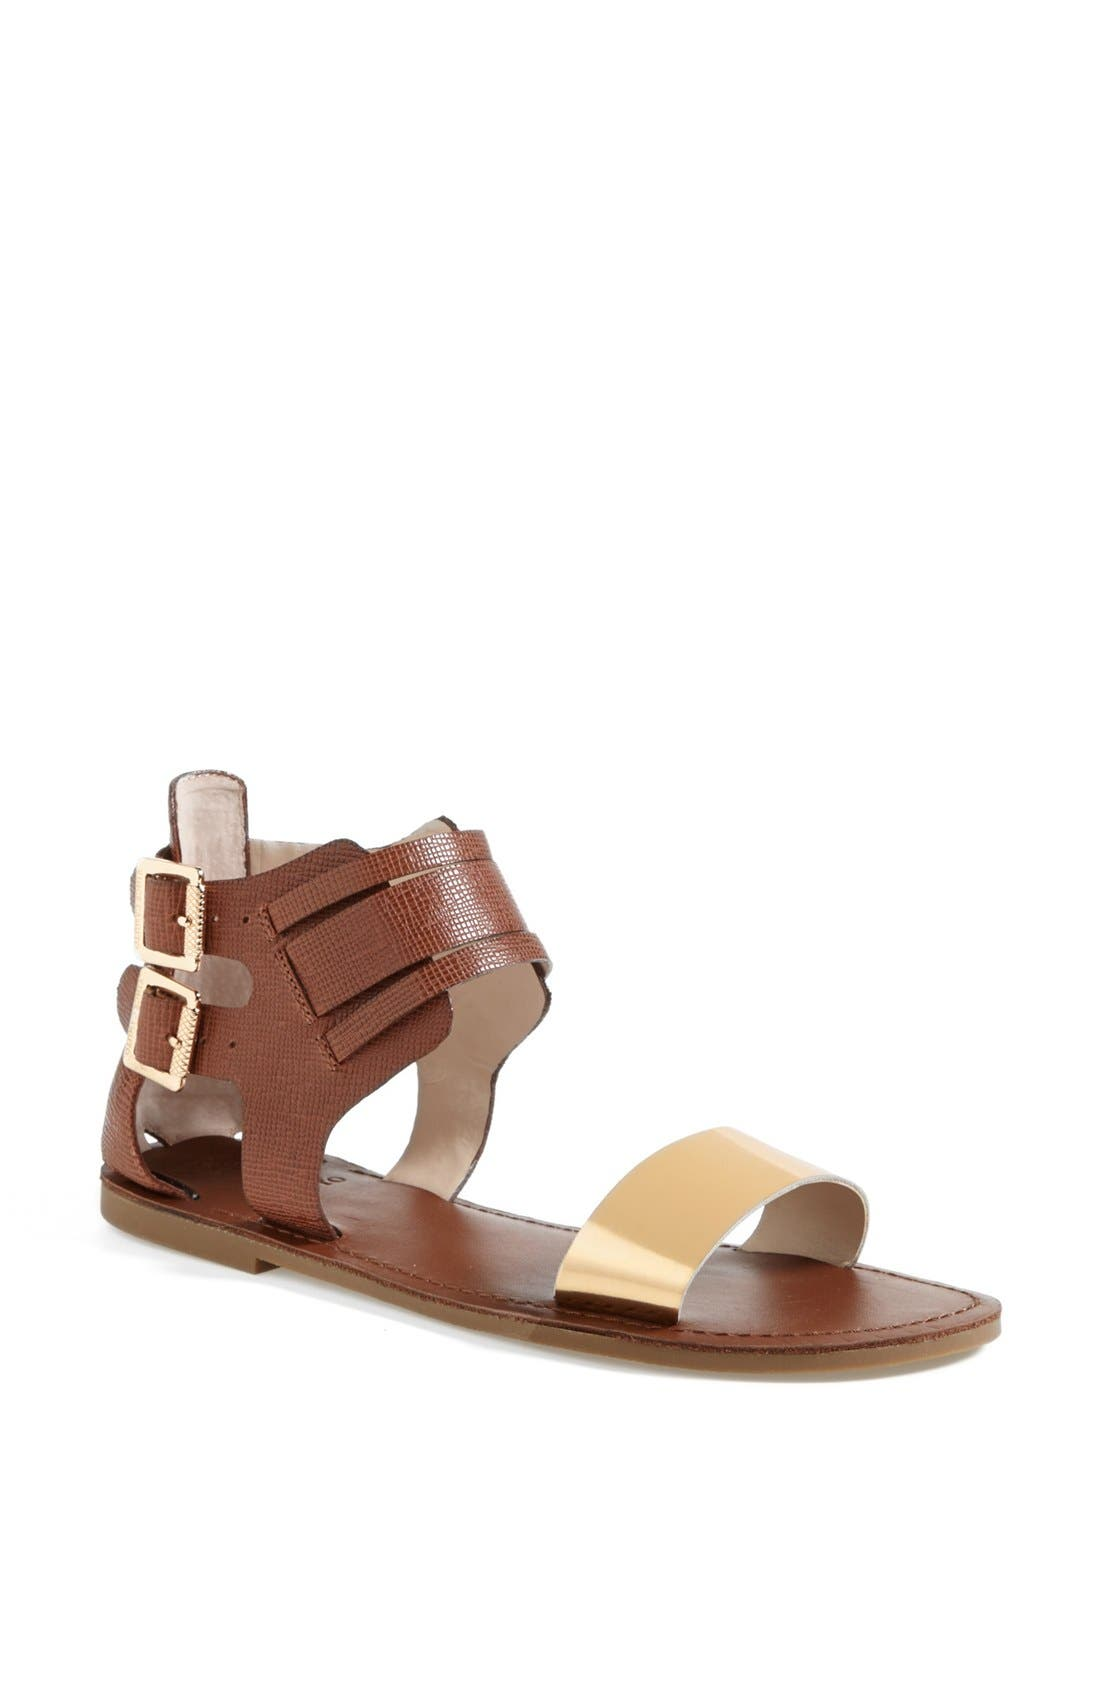 Alternate Image 1 Selected - Vince Camuto 'Irkeno' Leather Sandal